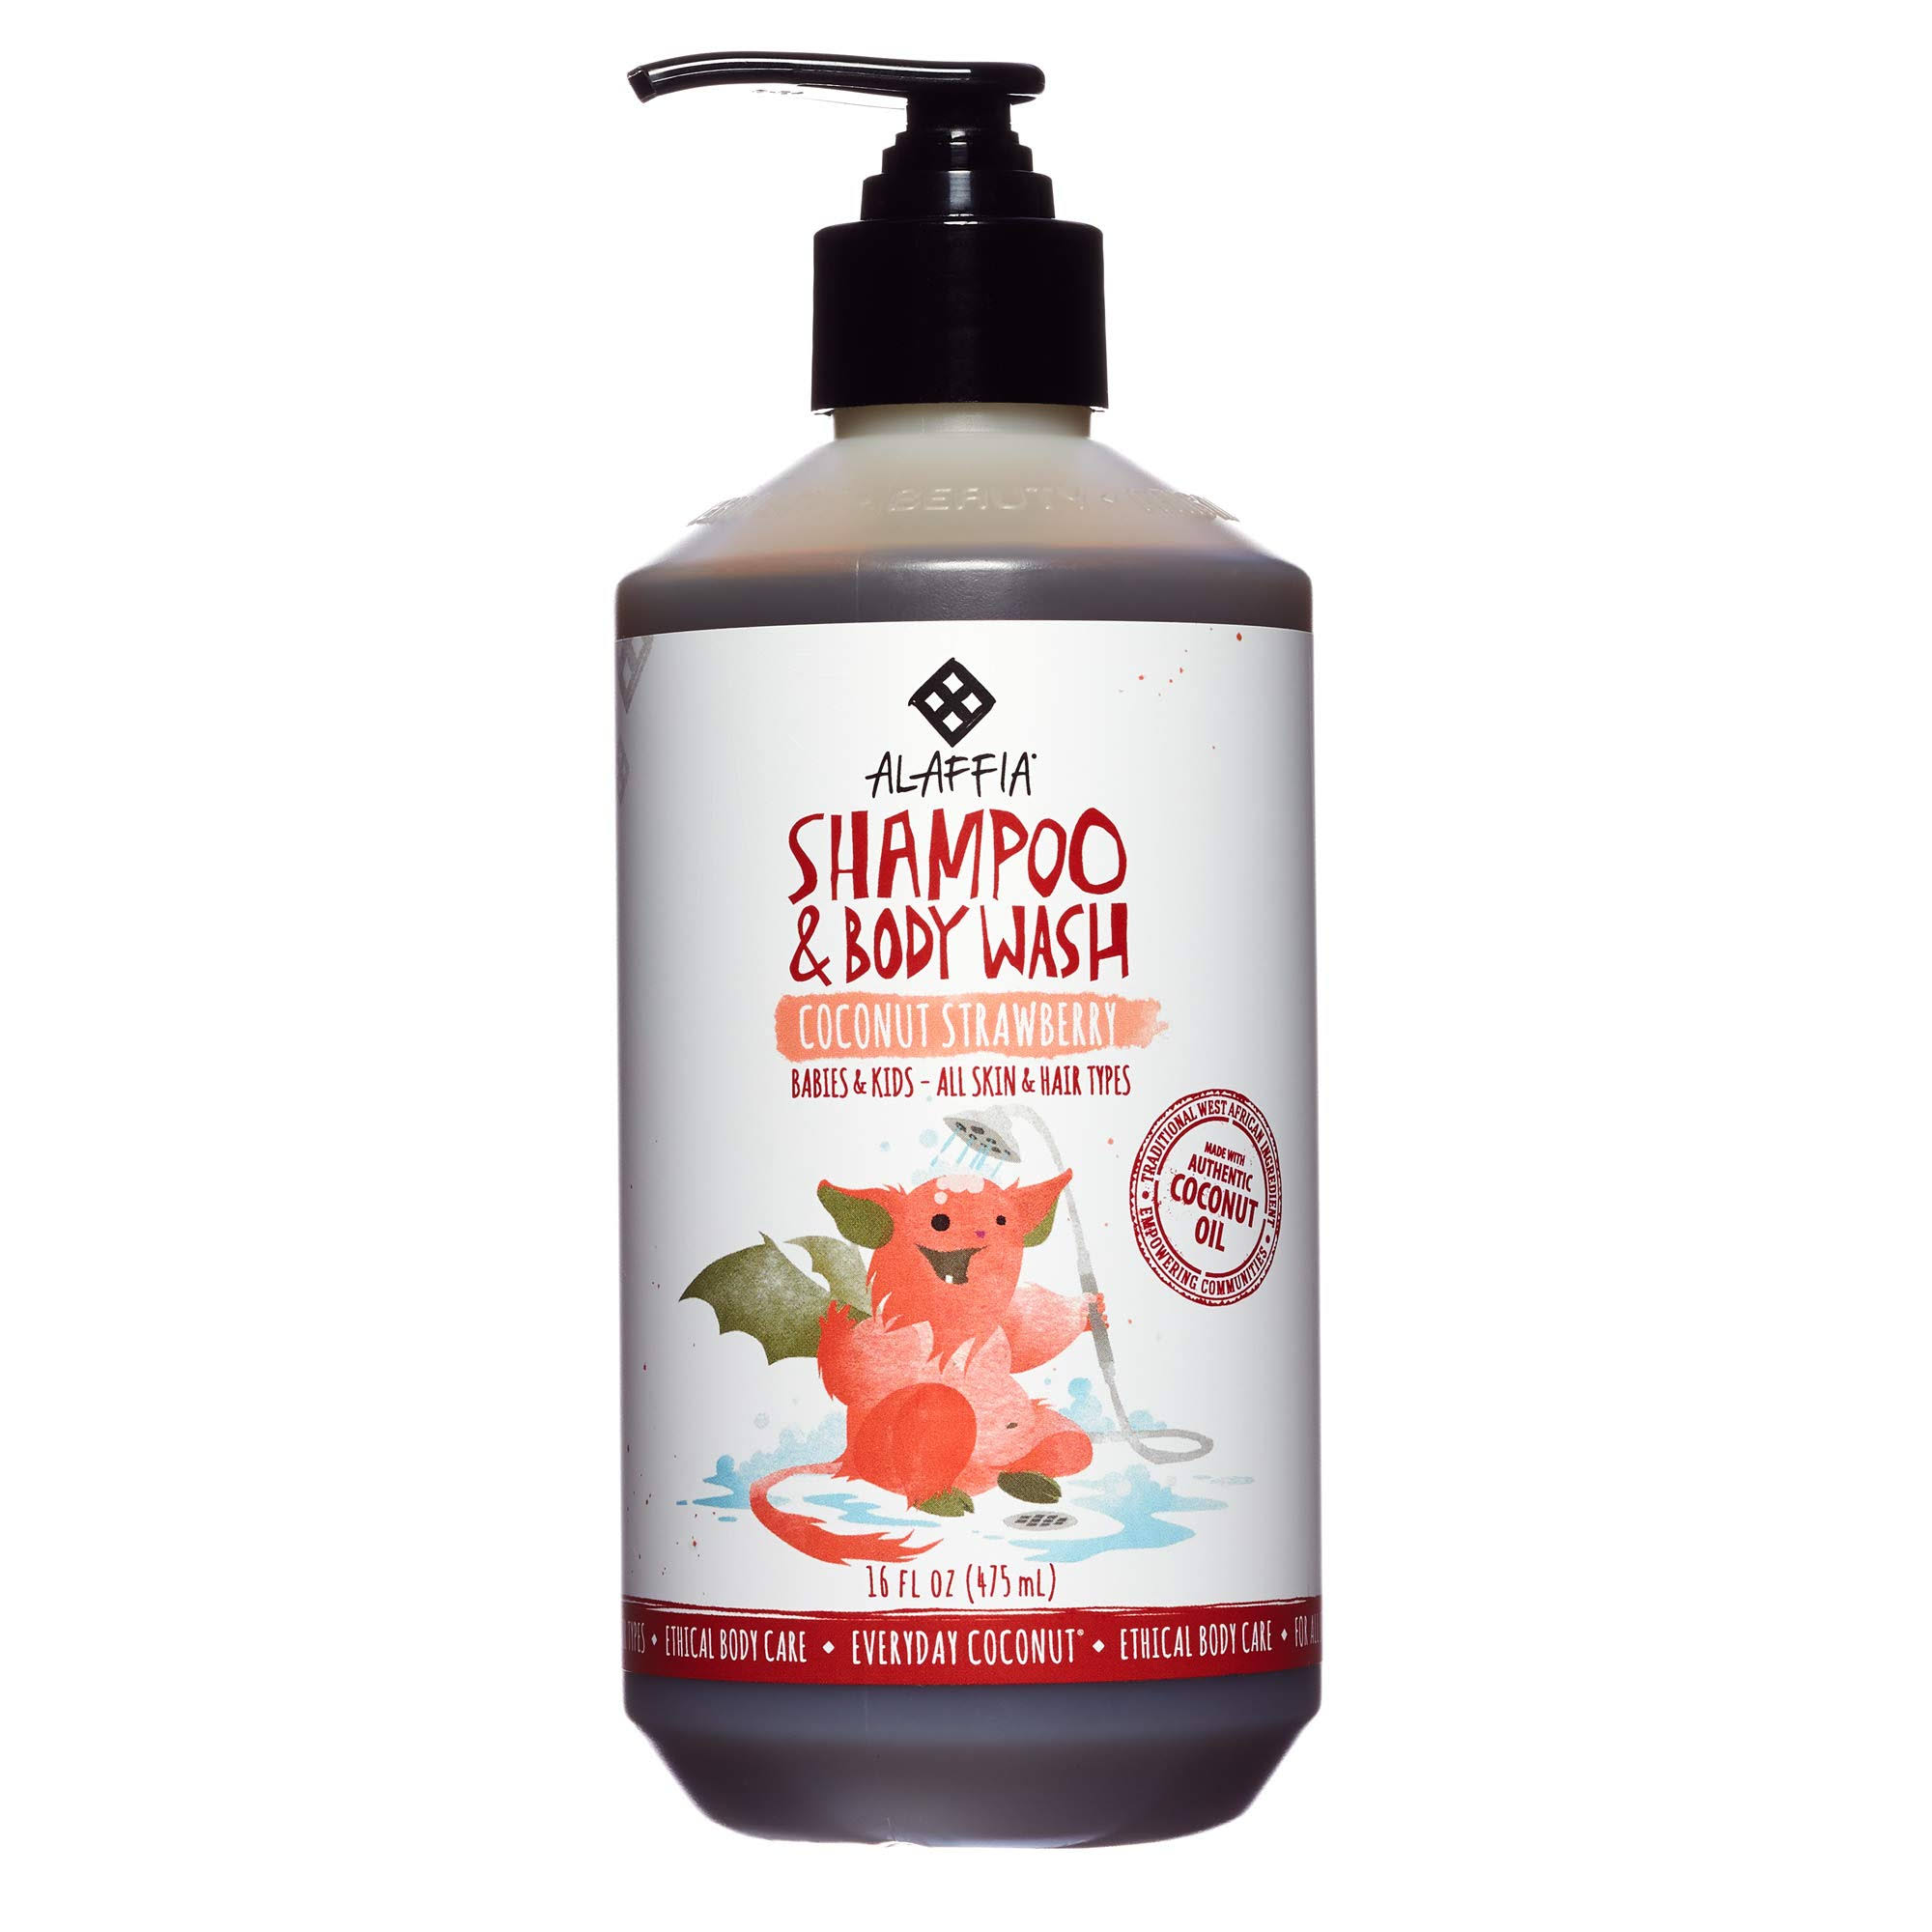 Alaffia Everyday Coconut Moisturizing Shampoo and Body Wash - Coconut Strawberry, 16oz